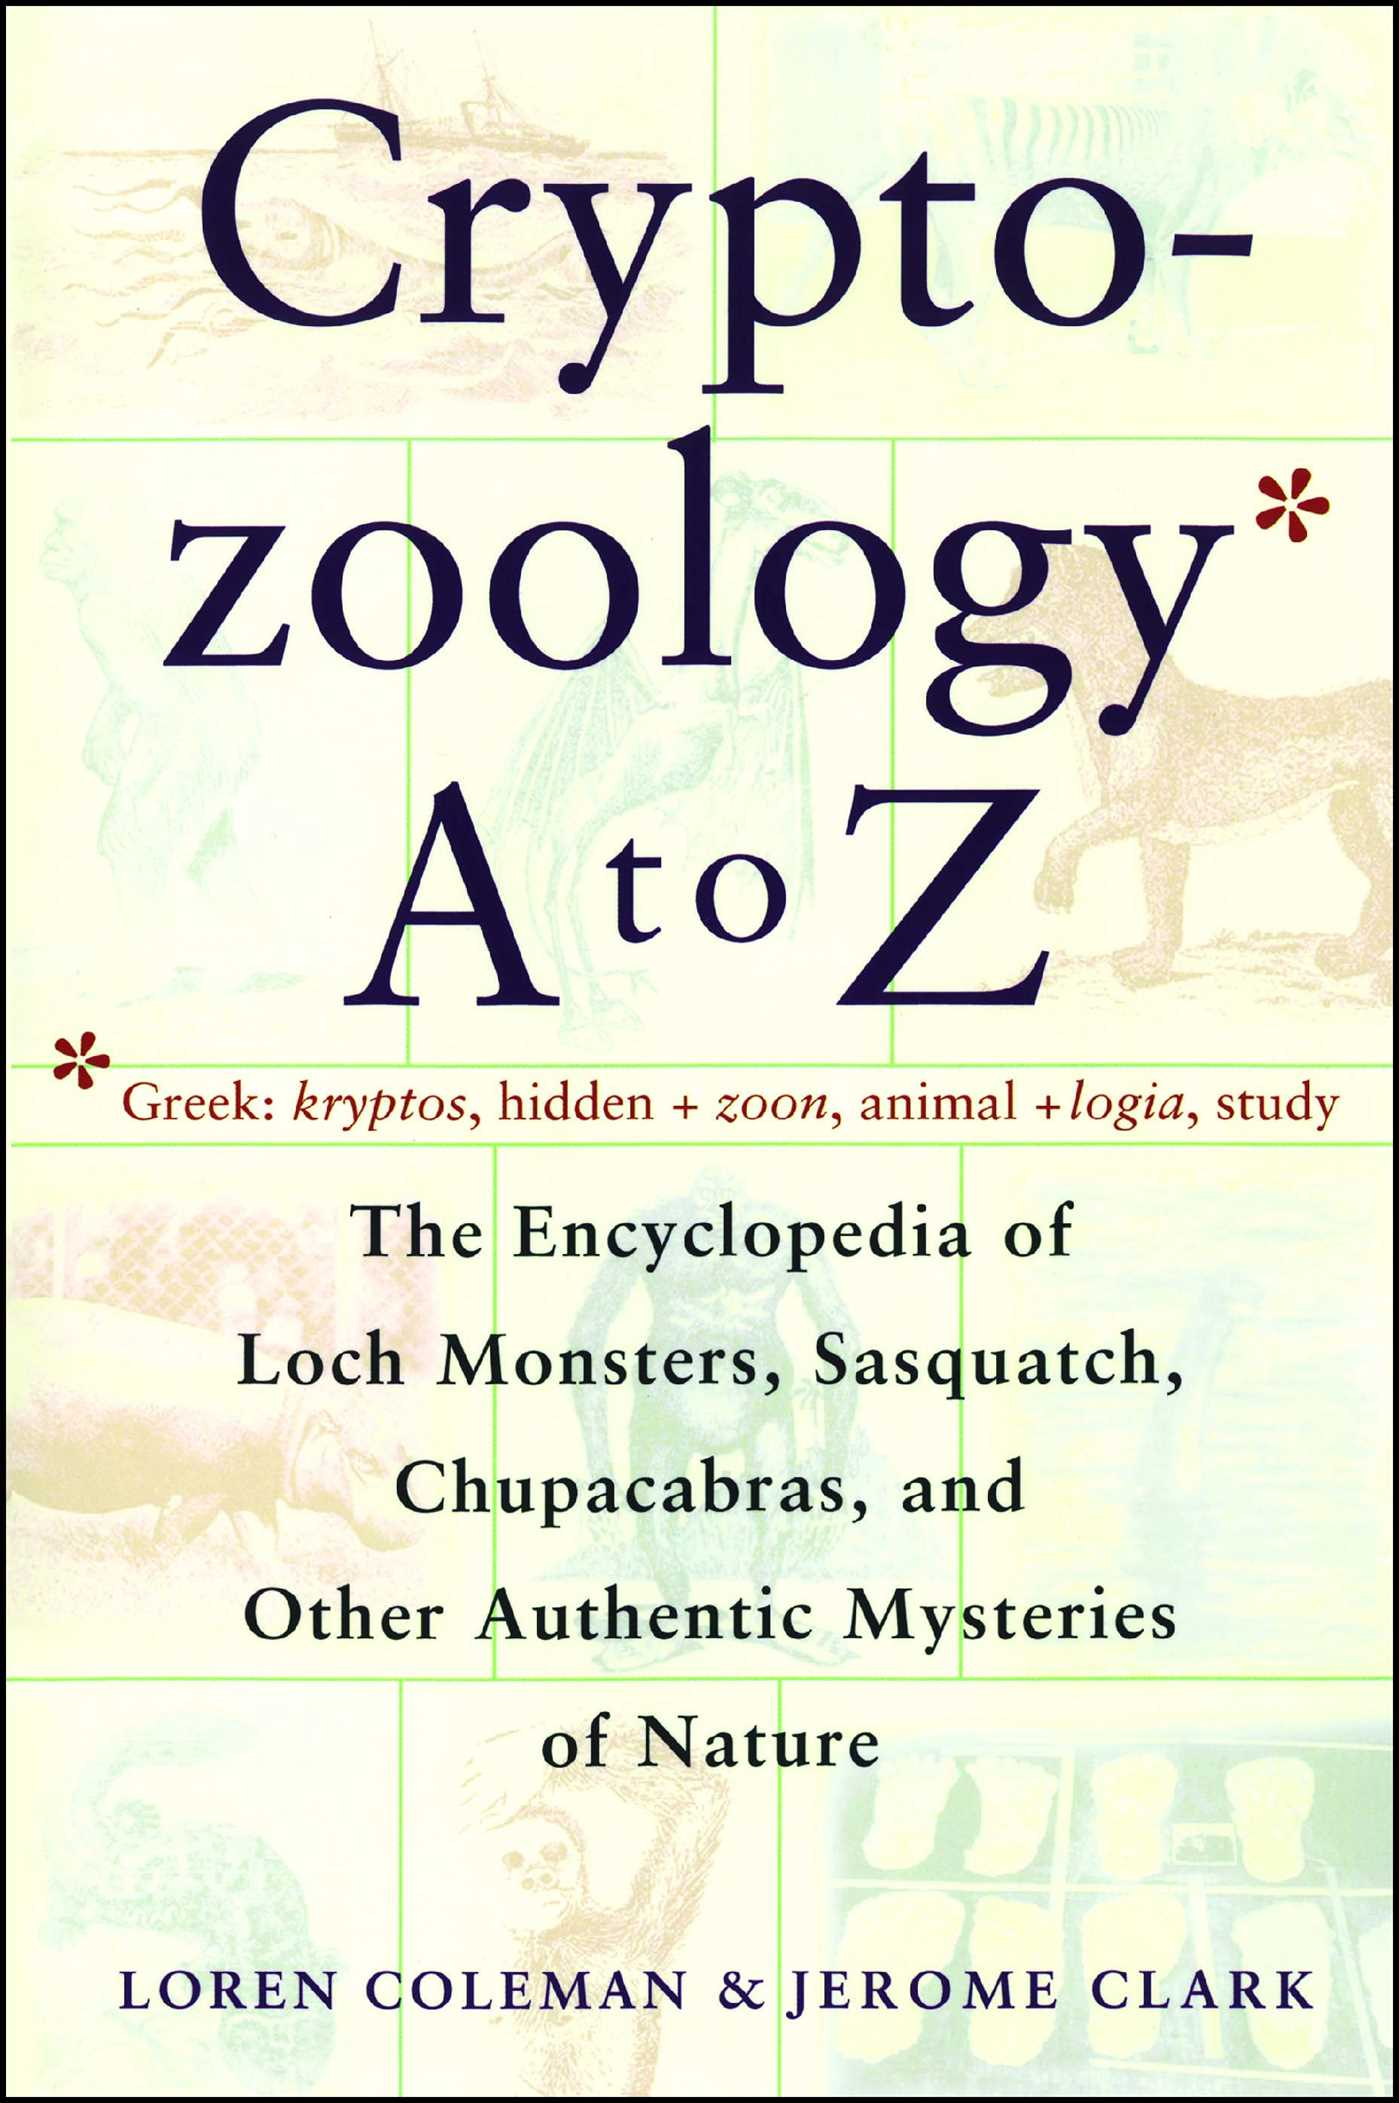 Cryptozoology-a-to-z-9780684856025_hr